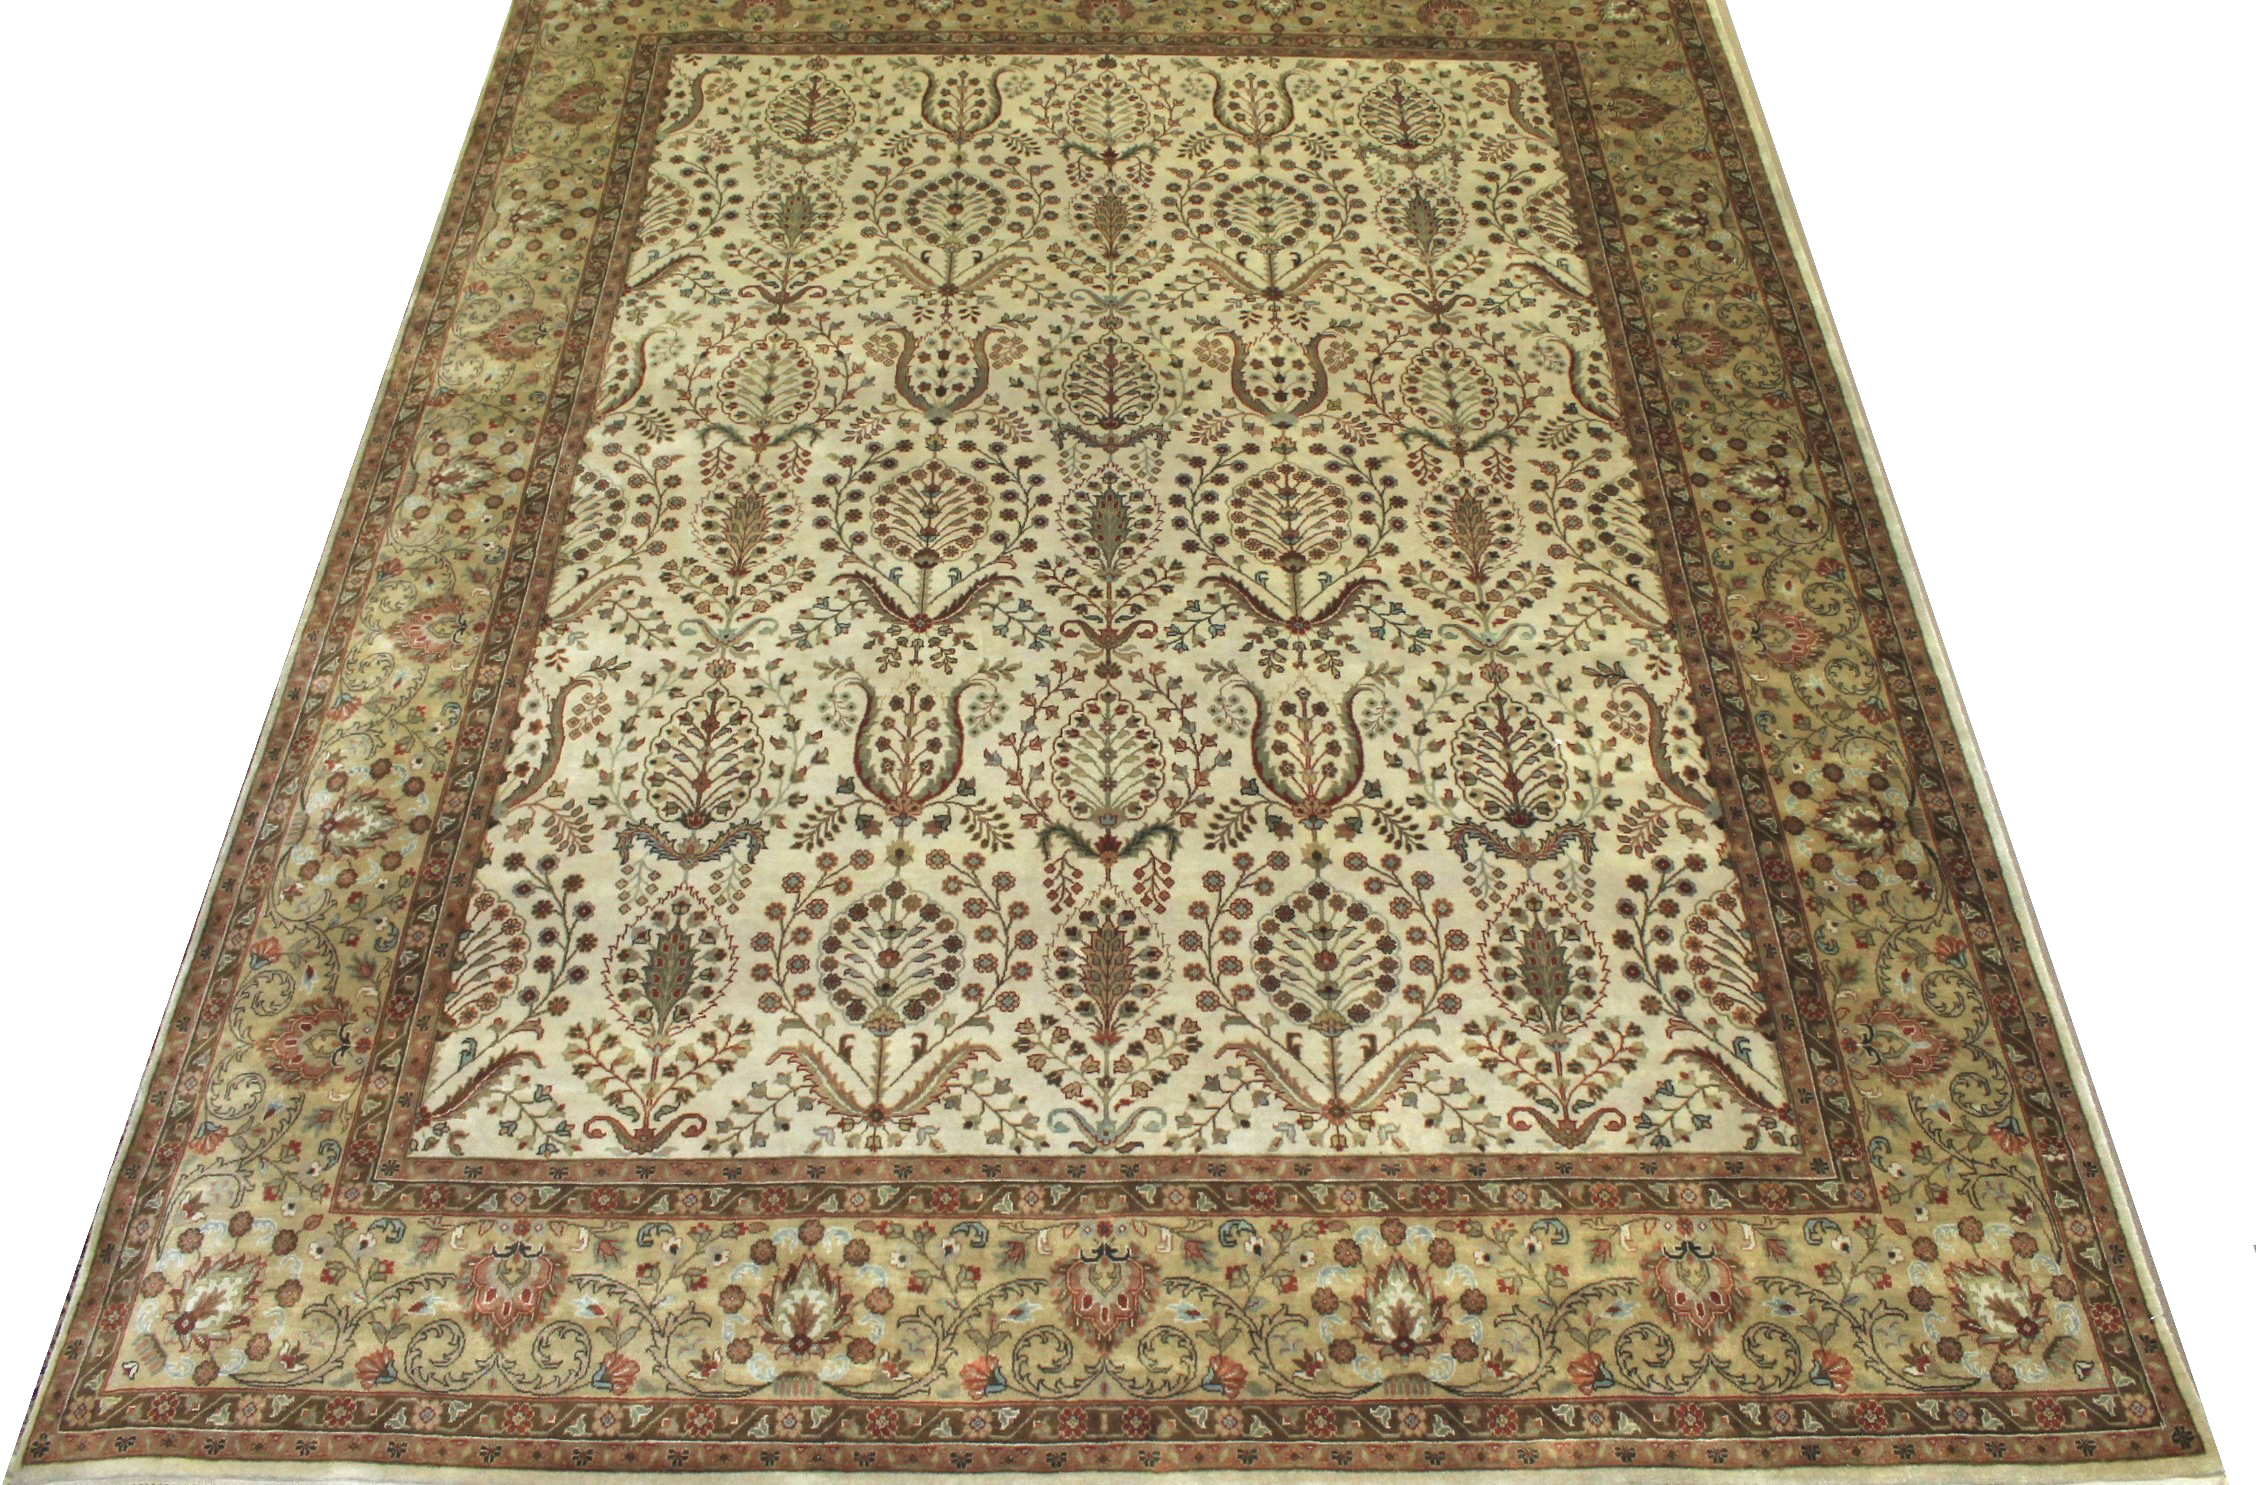 8x10 Traditional Hand Knotted Wool Area Rug - MR11162